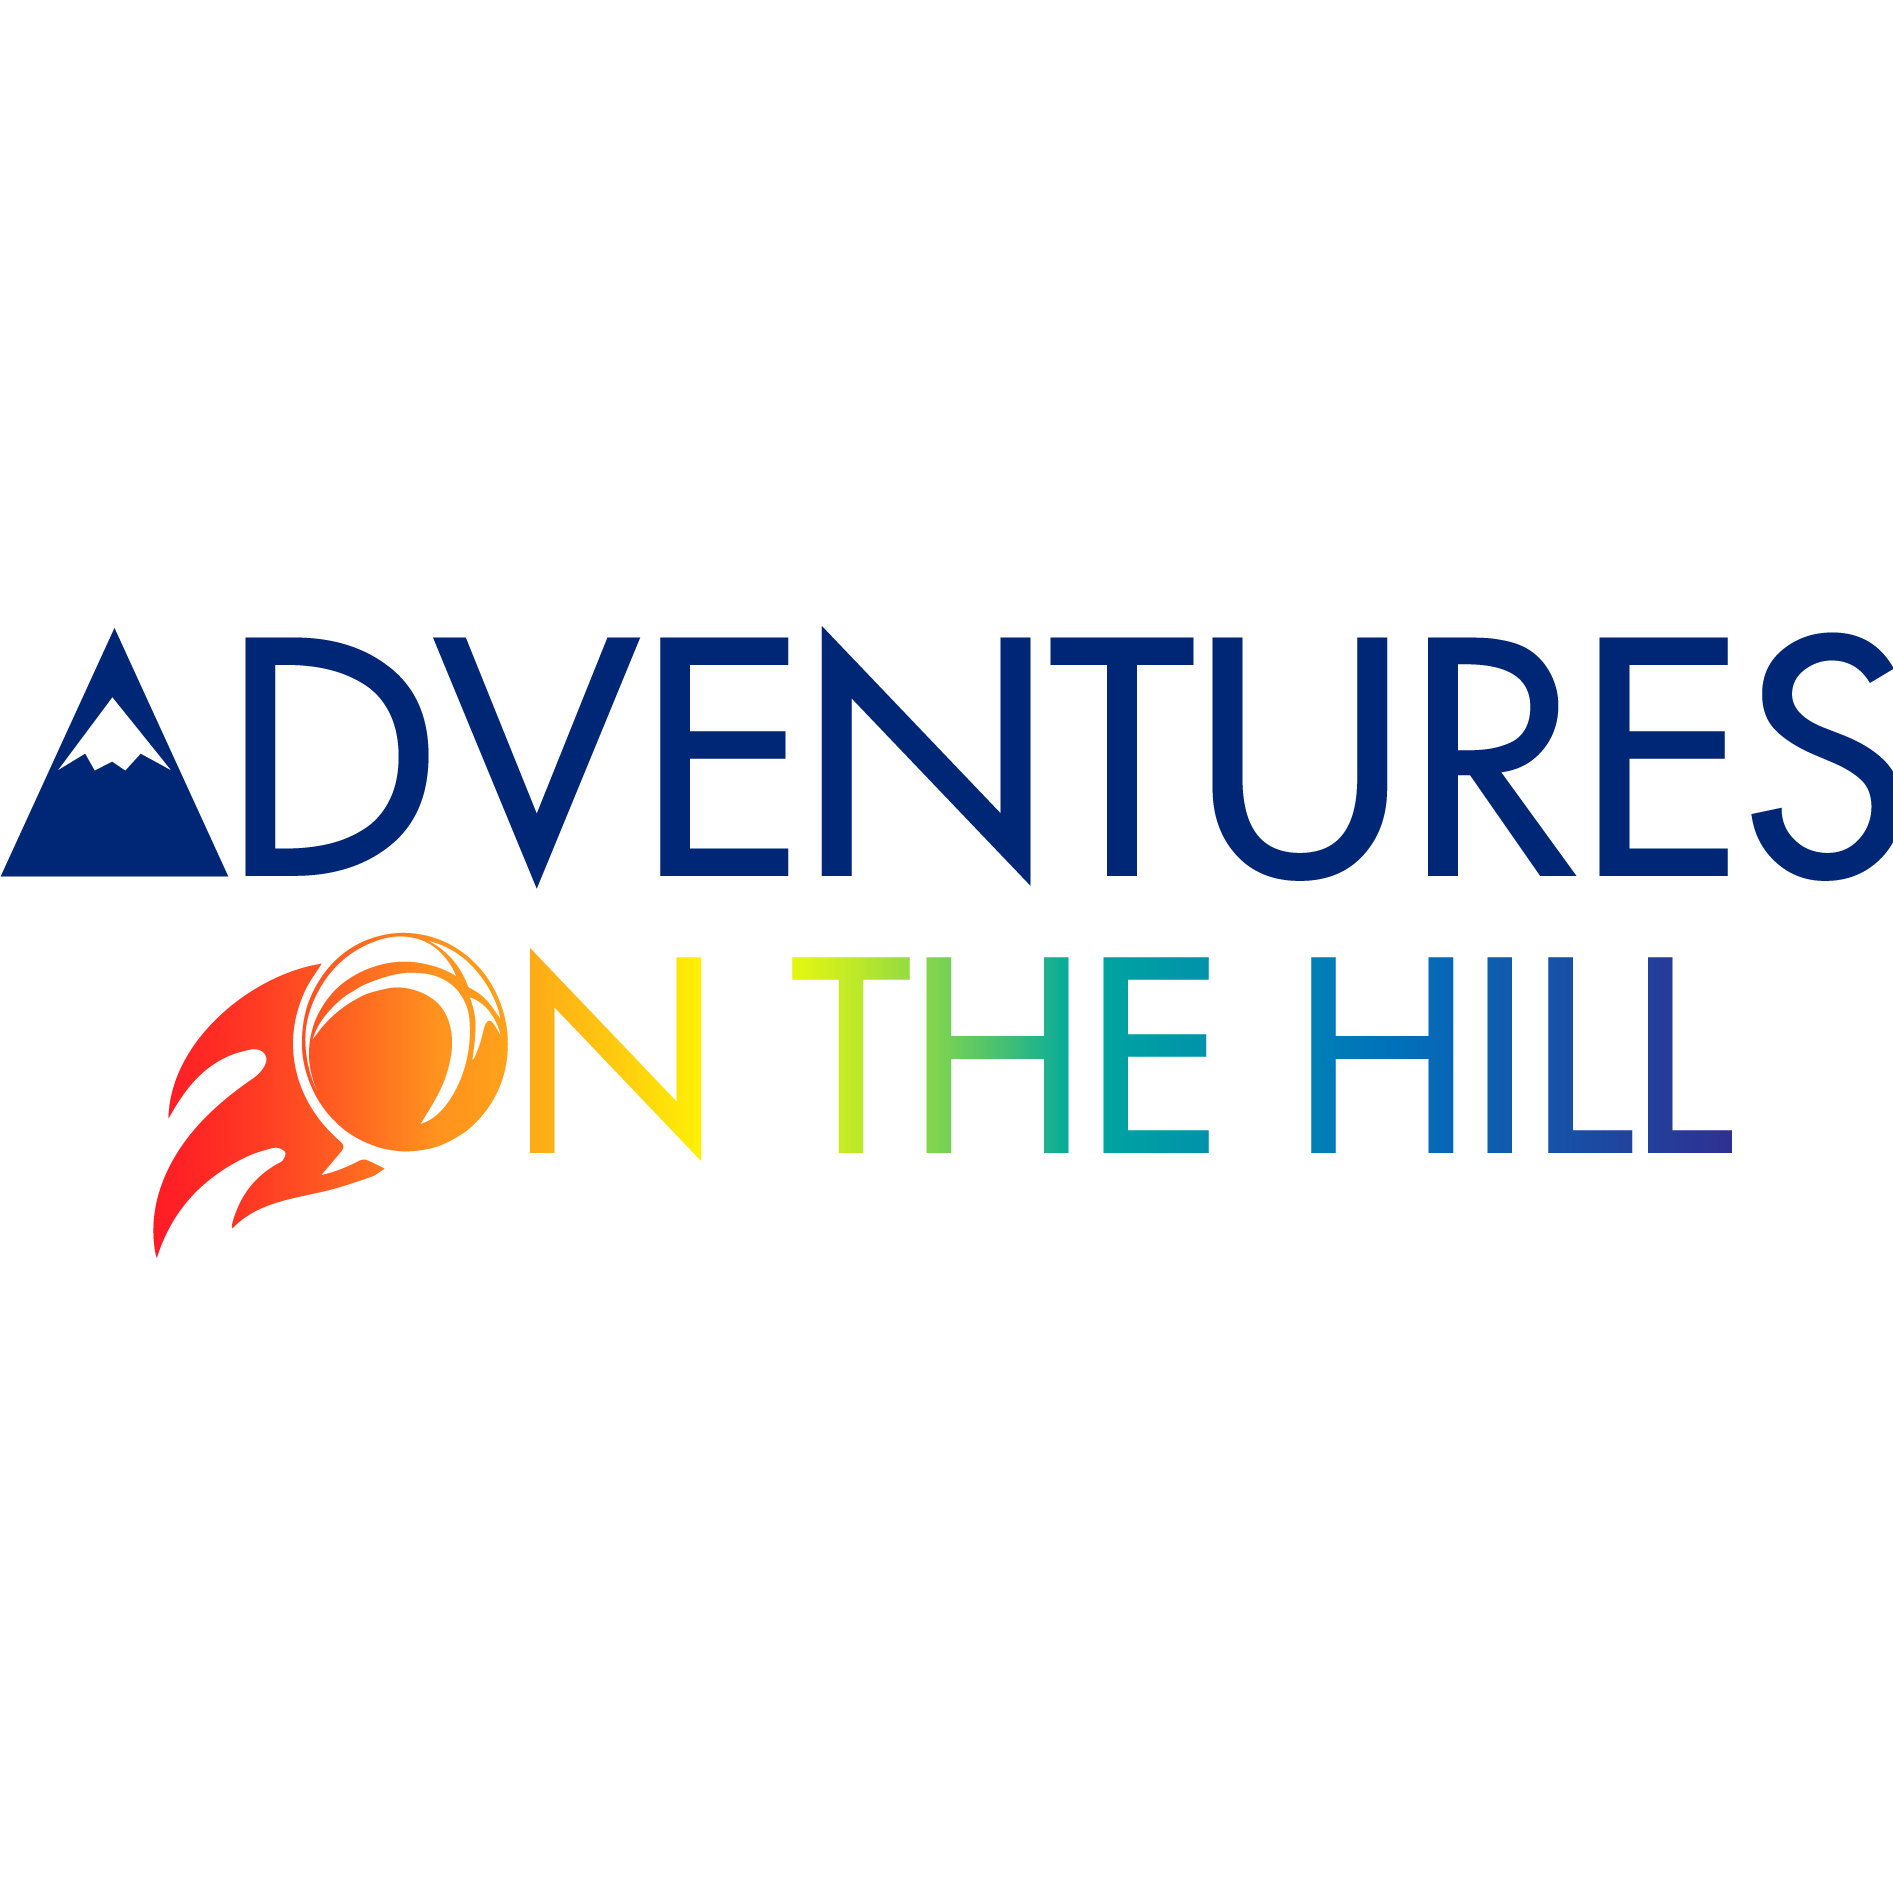 Adventures On The Hill Summer Camp